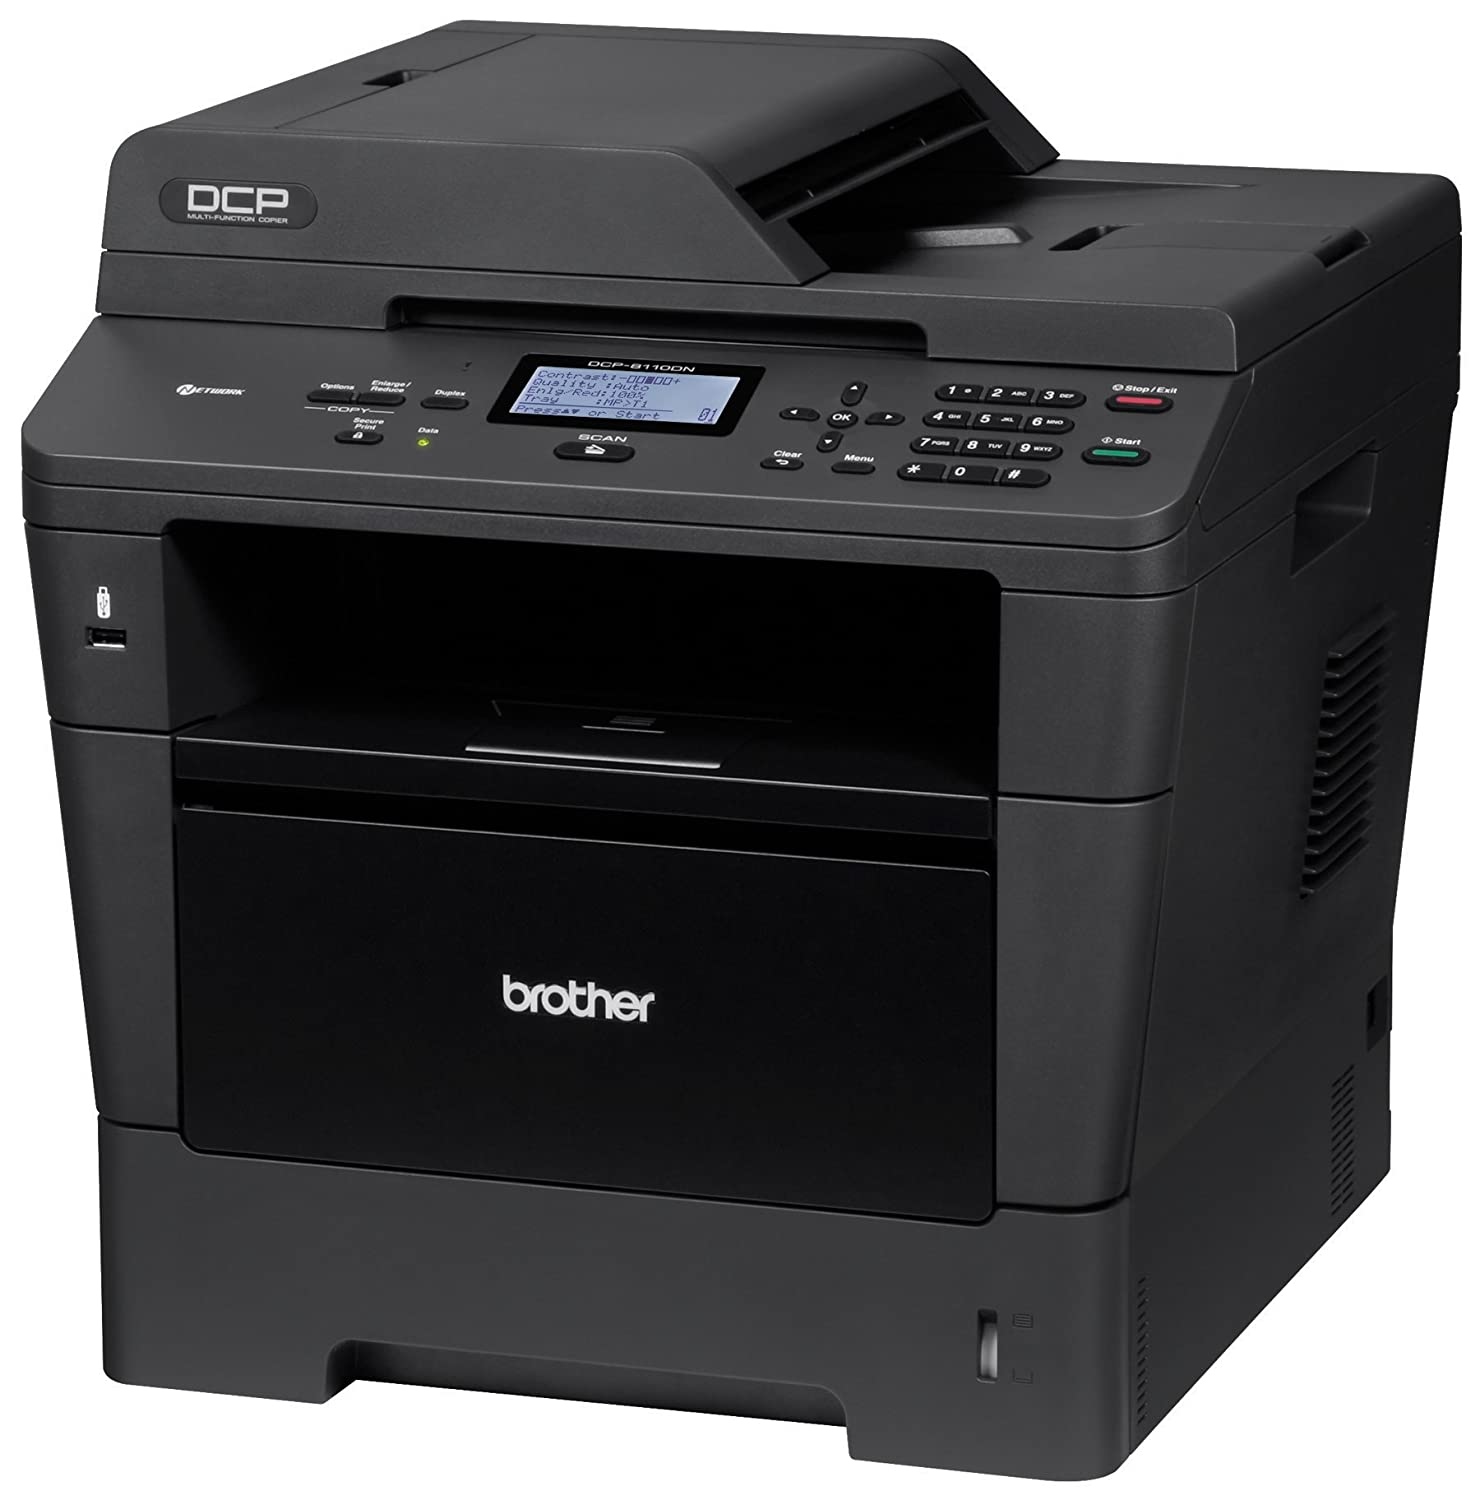 Amazon.com : Brother Printer DCP8110DN Monochrome Printer ...